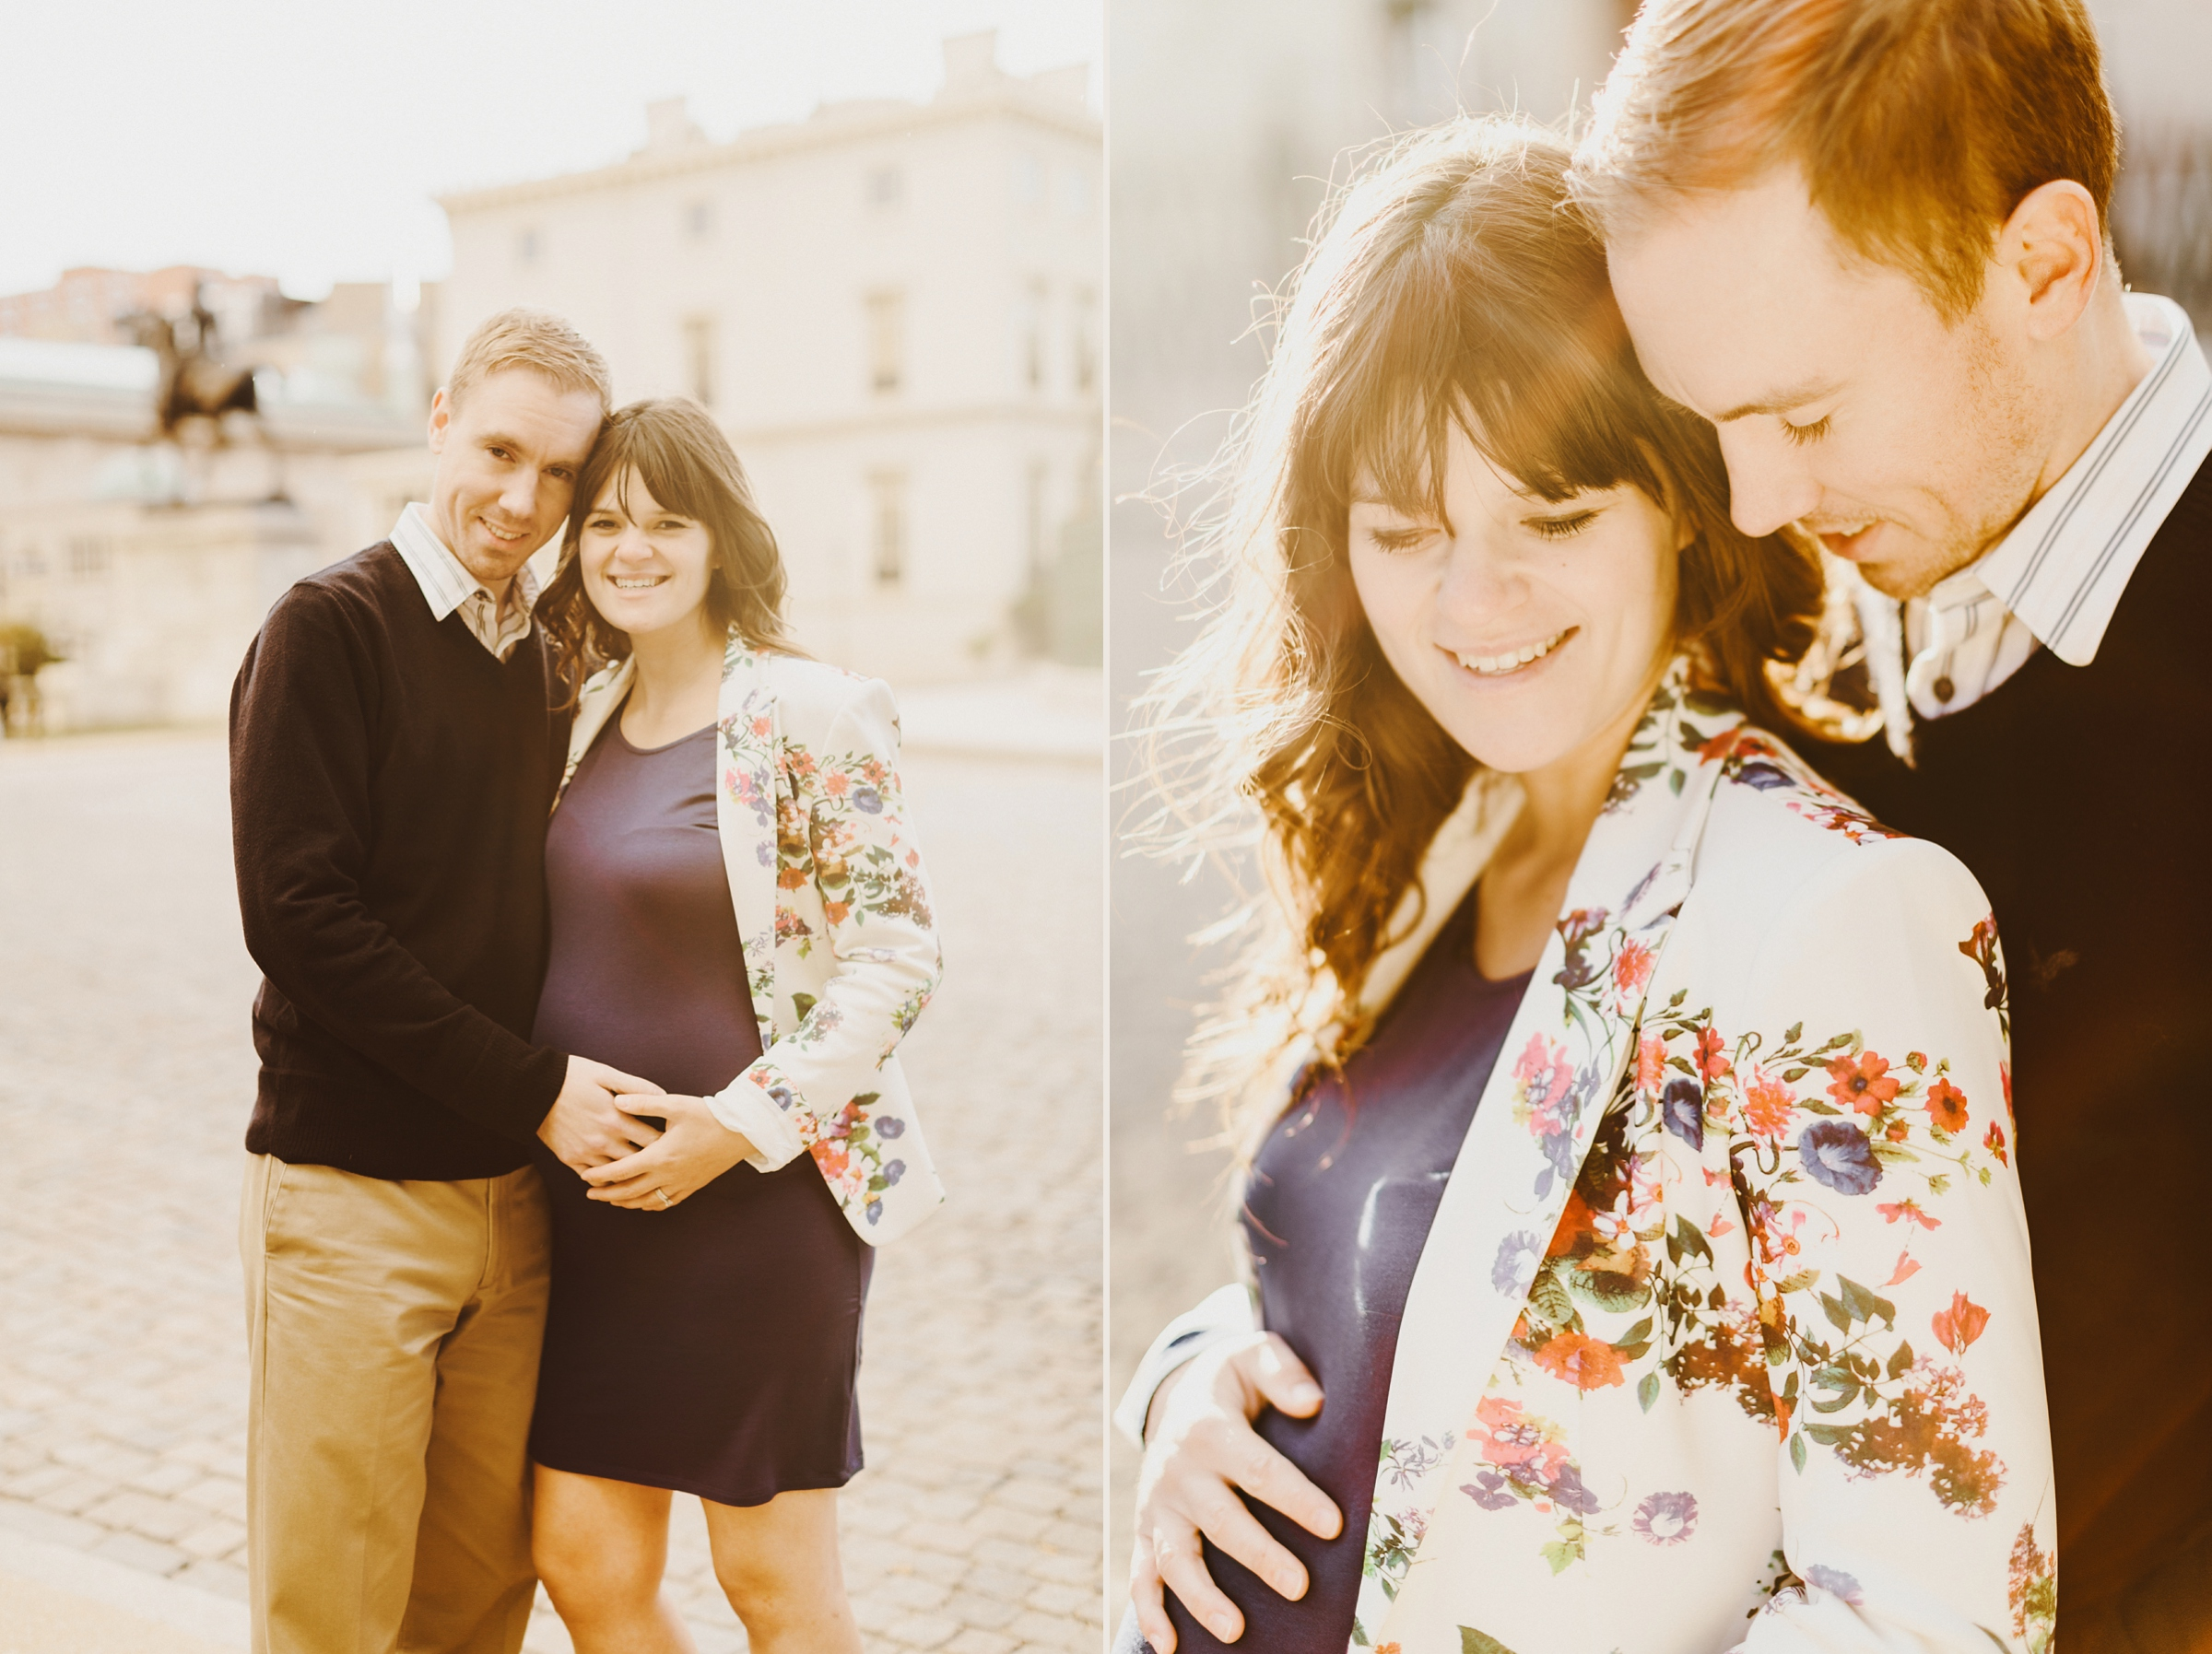 Baltimore_Maternity_Sunset_Portrait_Session_by_Maryland_Wedding_Photographer_Kate_Ann_Photography_photo_0873